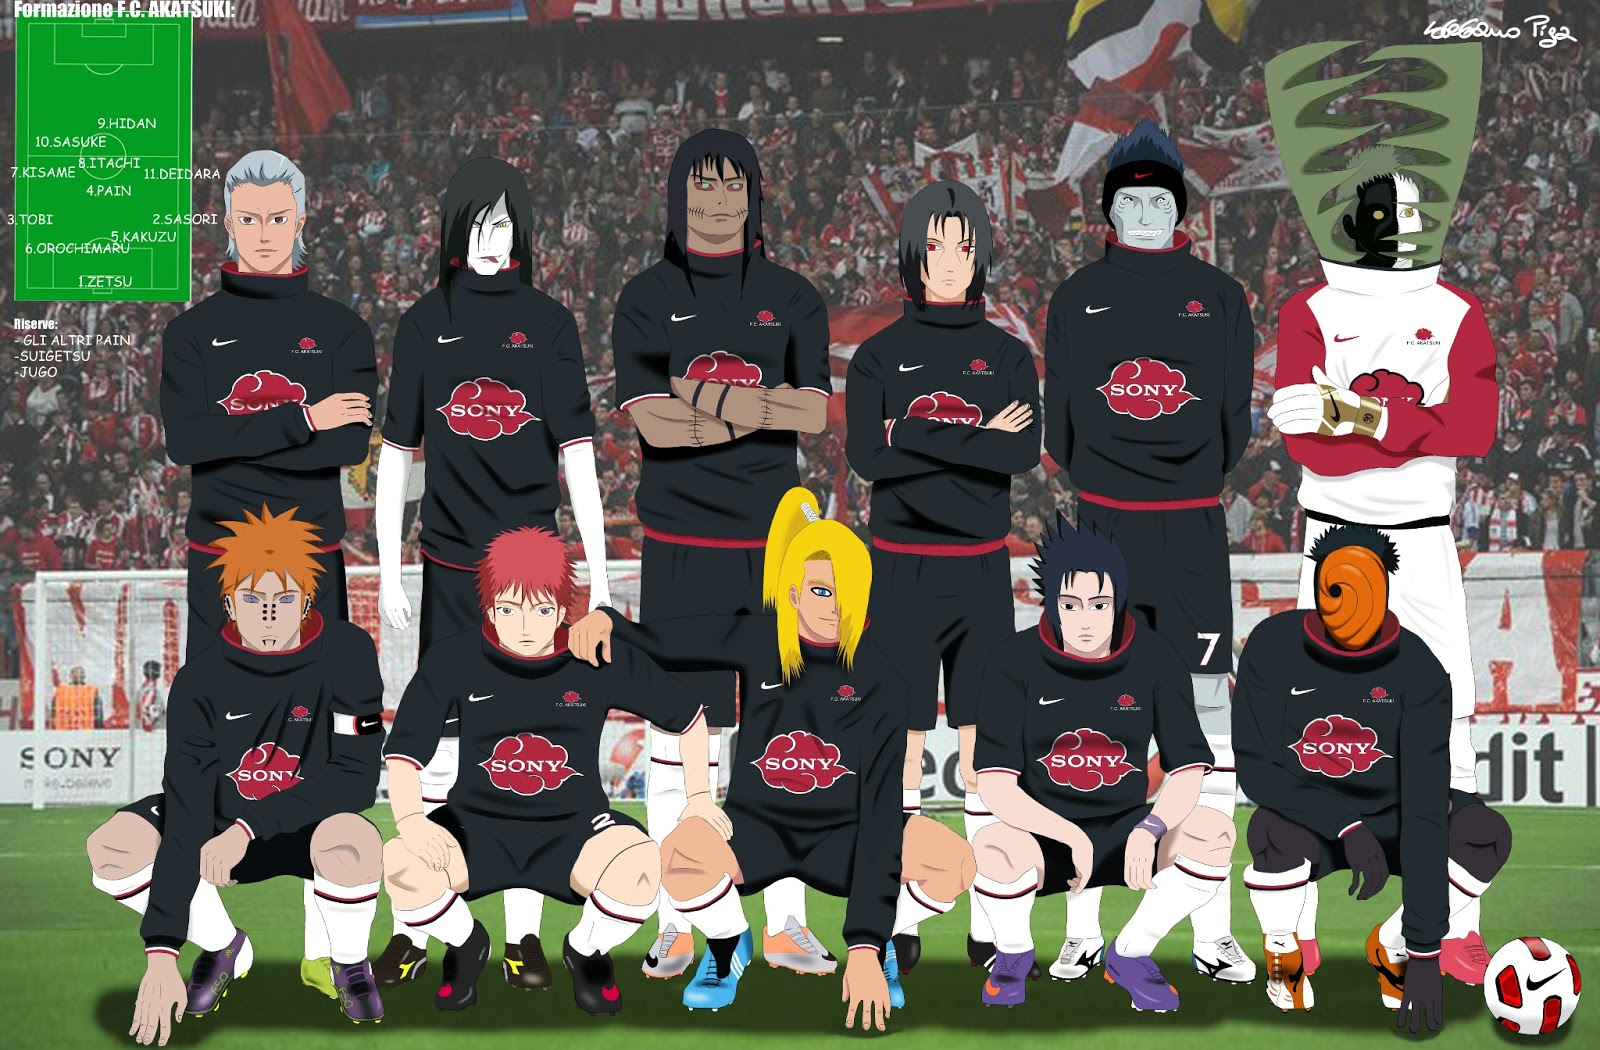 Manchester United in Anime and Cartoon  Pocong Ngesot 48